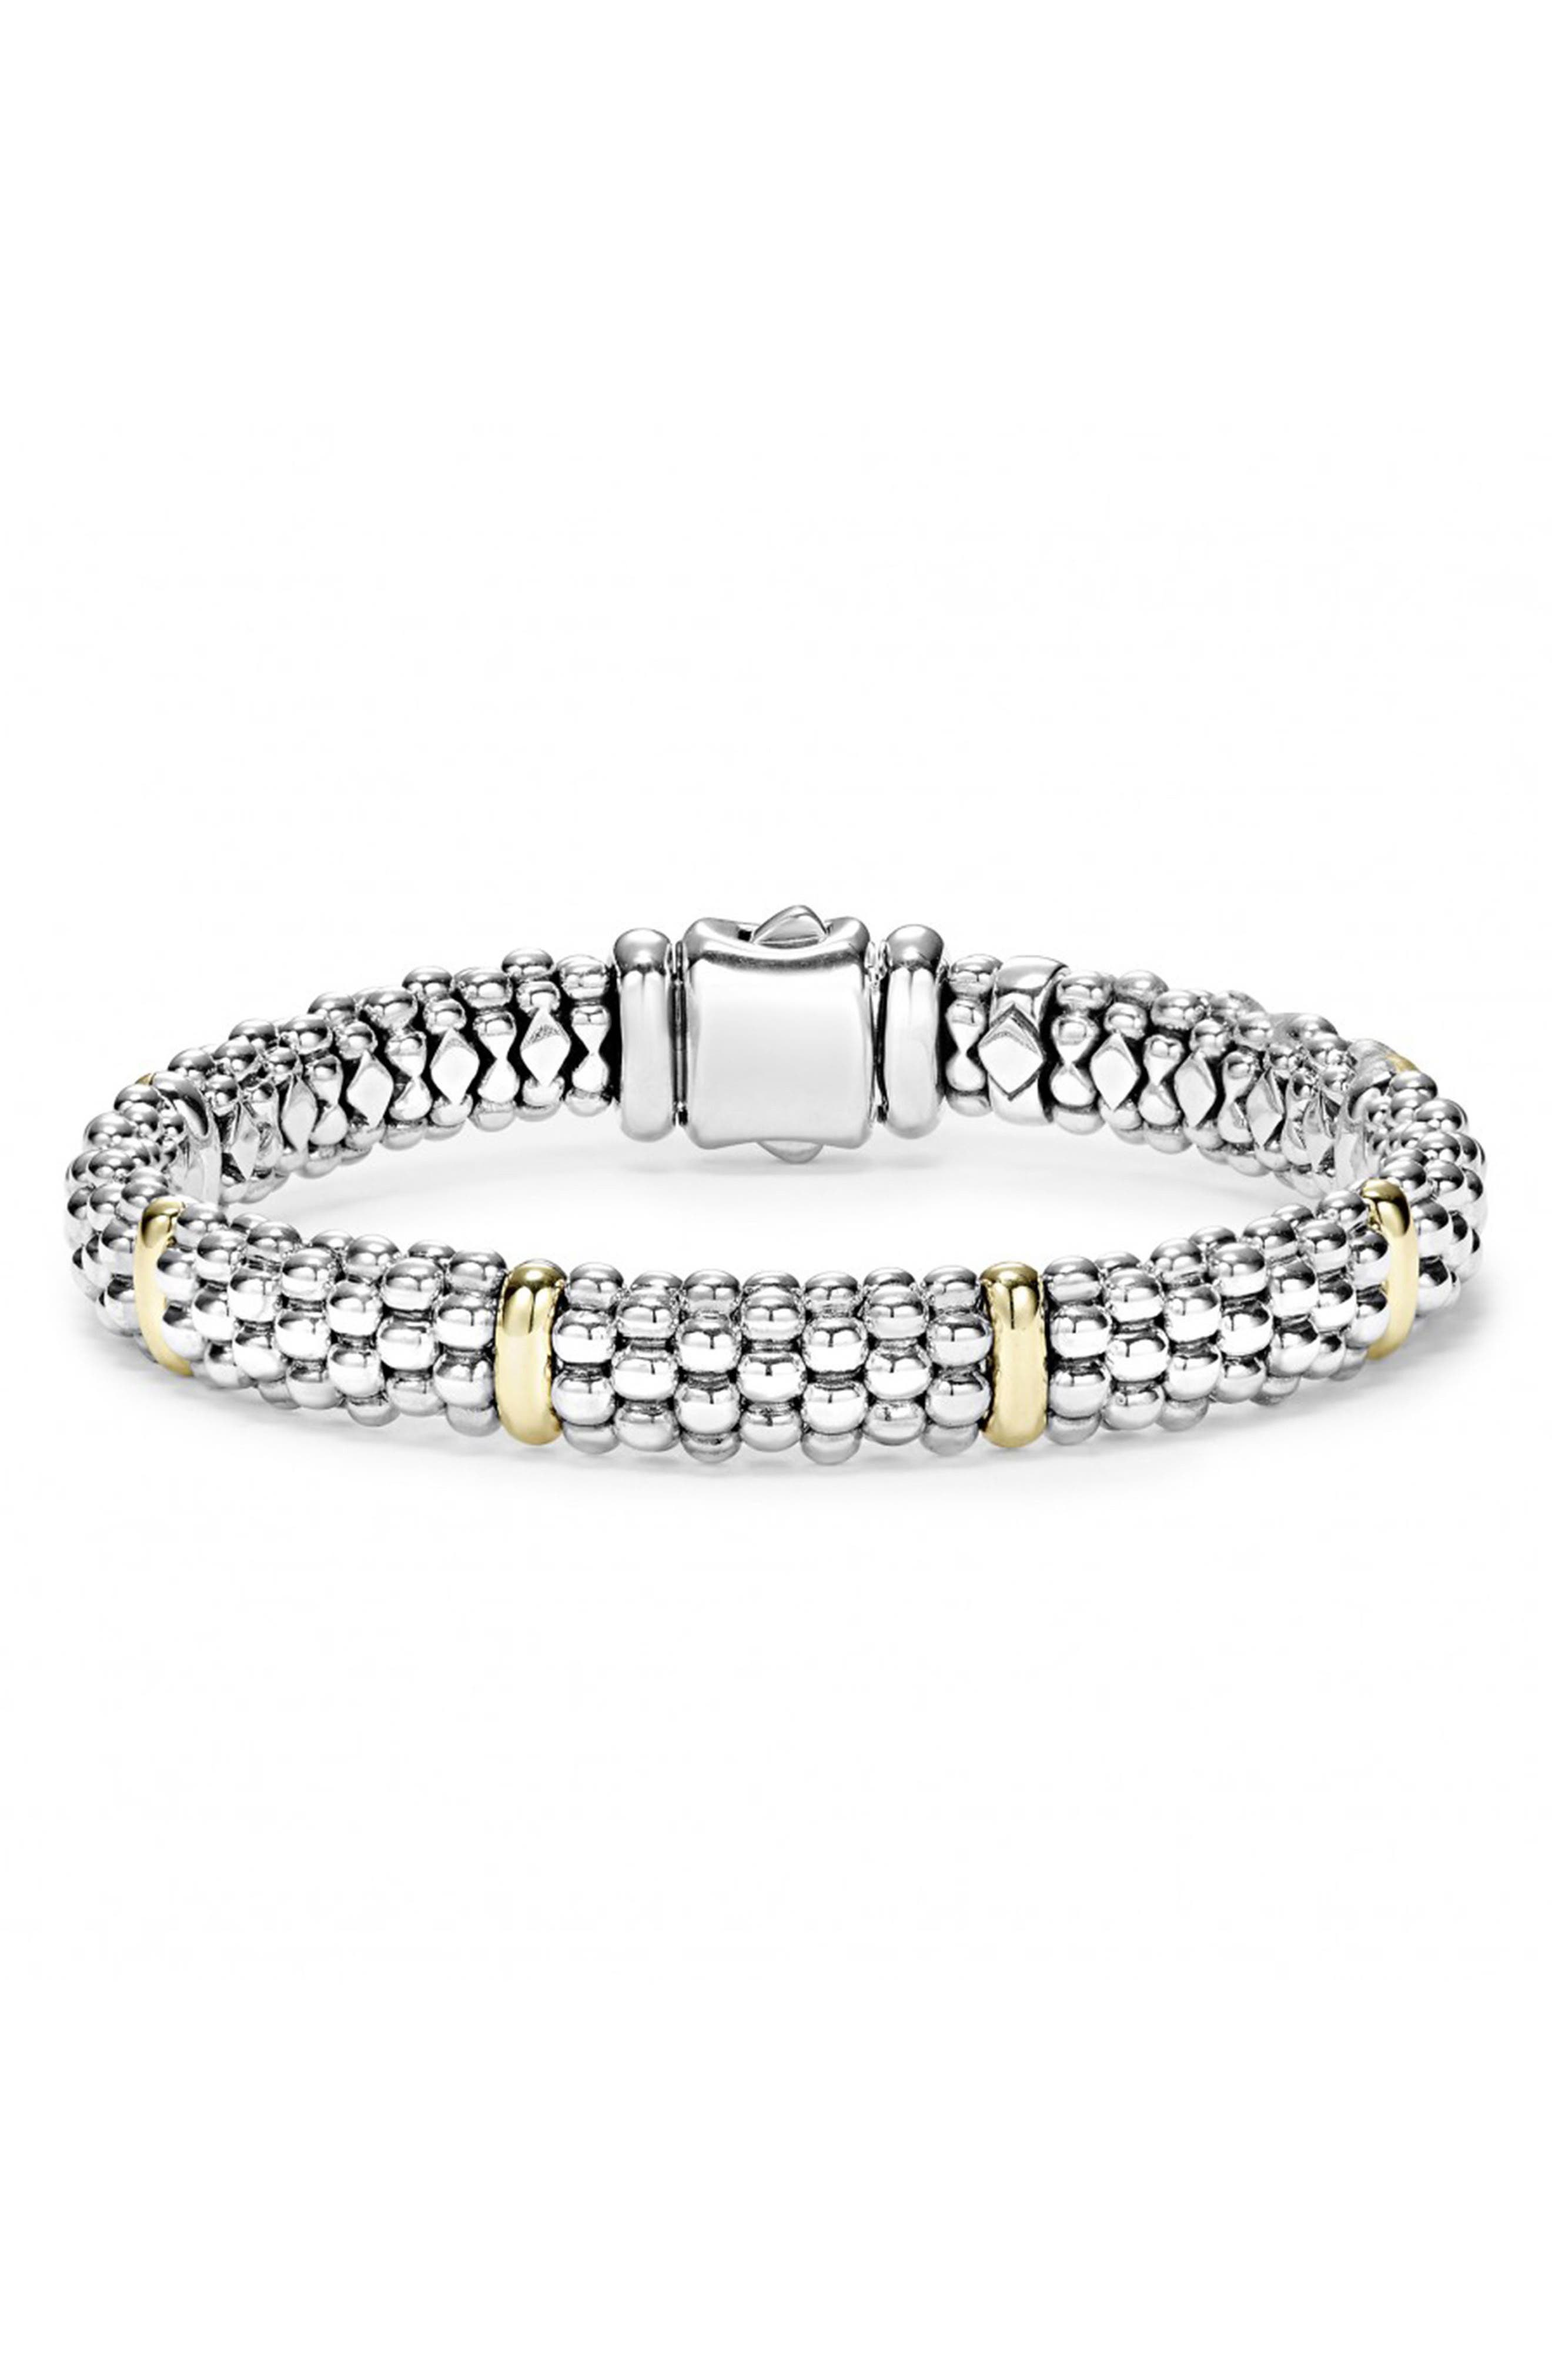 Caviar Rope Bracelet,                             Main thumbnail 1, color,                             SILVER/ GOLD